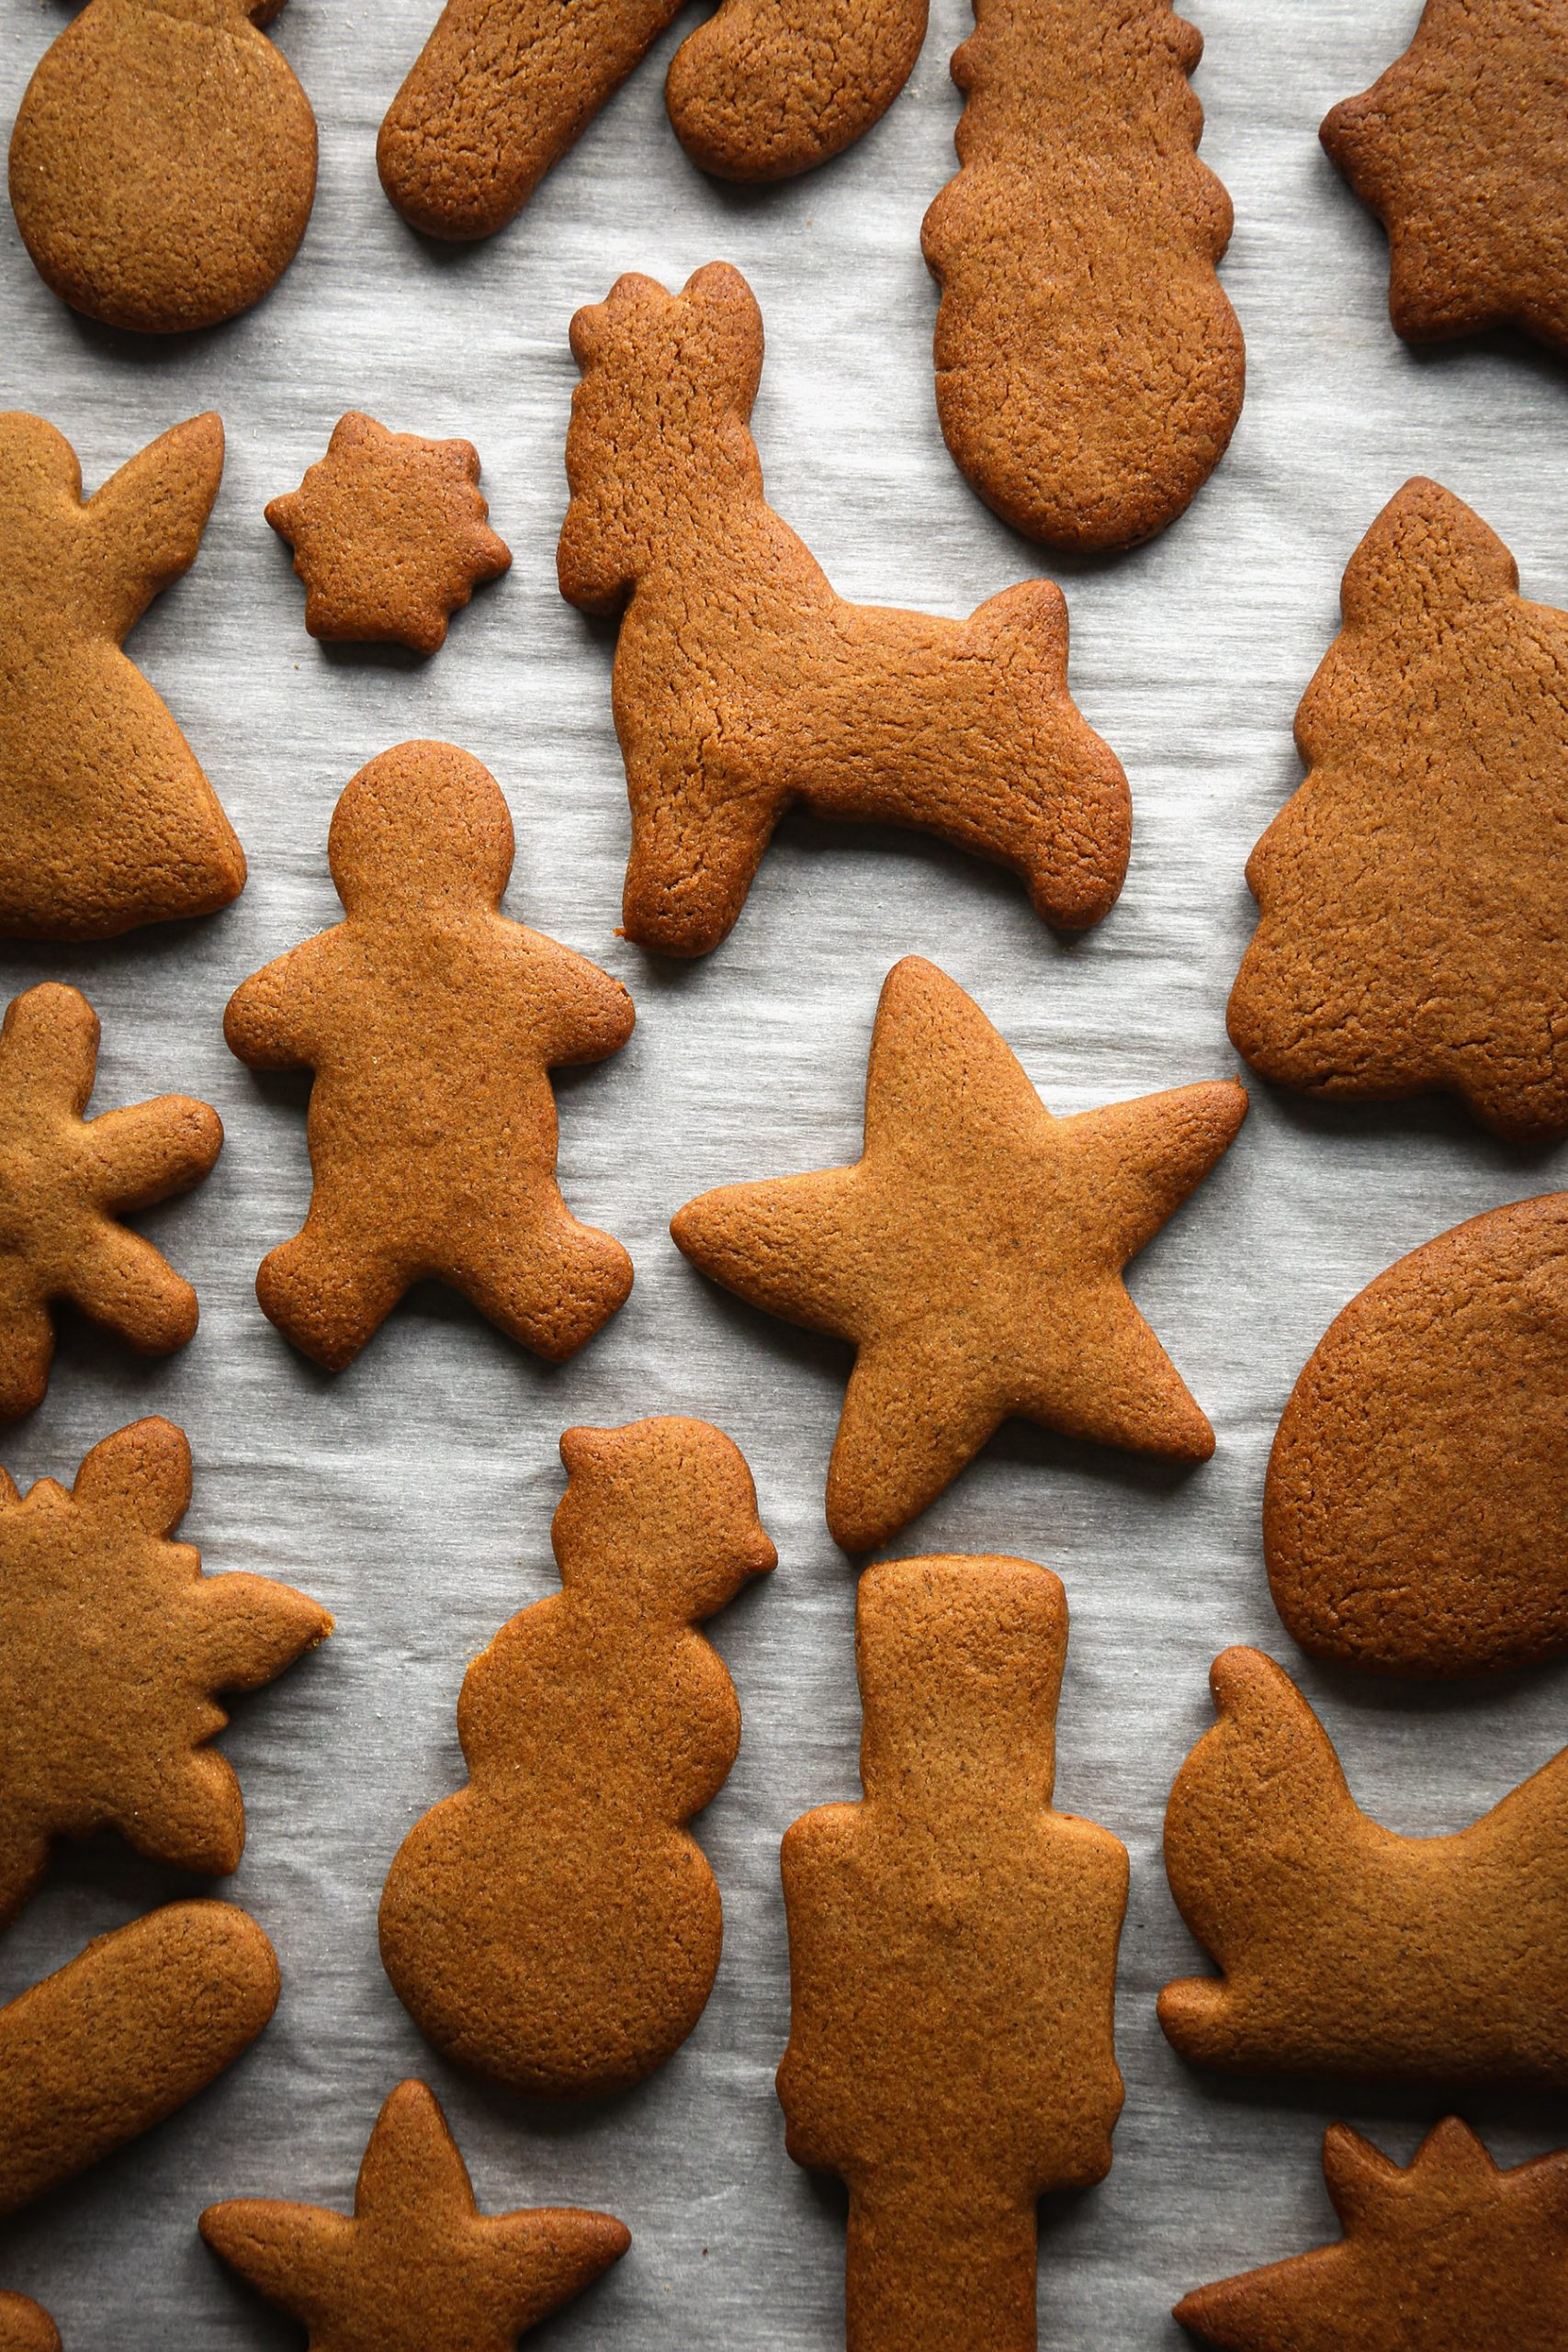 Gingerbread Cut-Out Cookies | Vegan friendly with gluten free and refined sugar free options.